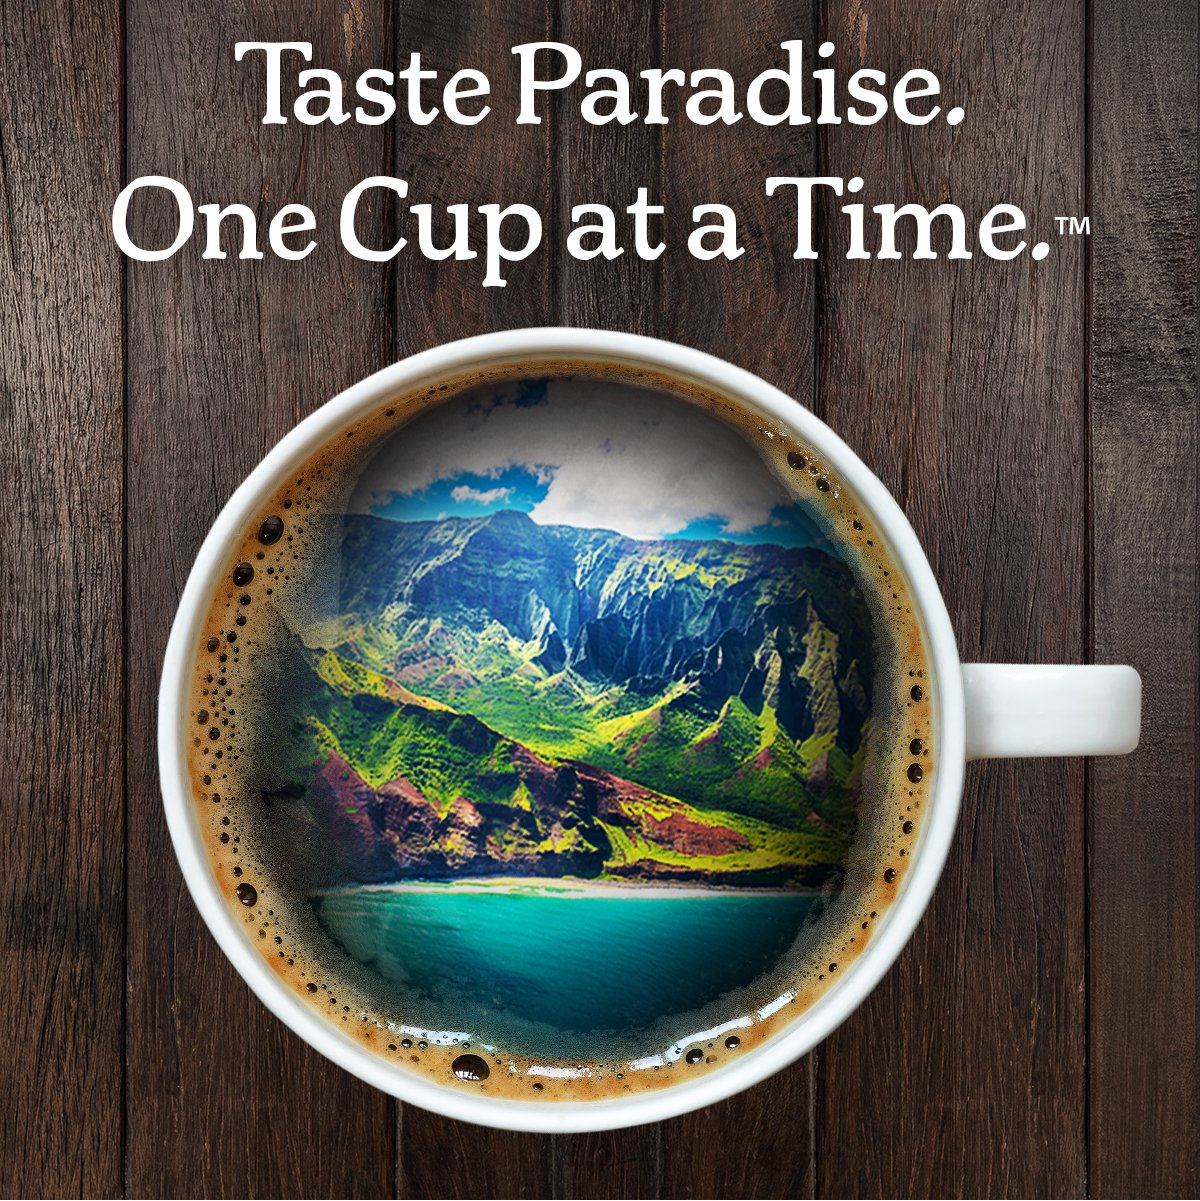 100% Kauai Whole Bean Coffee, Koloa Estate Medium Roast – 100% Premium Arabica Whole Bean Coffee from Hawaii's Largest Coffee Grower - Bright Aroma with Light Floral Notes (32 Ounces) by Kauai (Image #5)